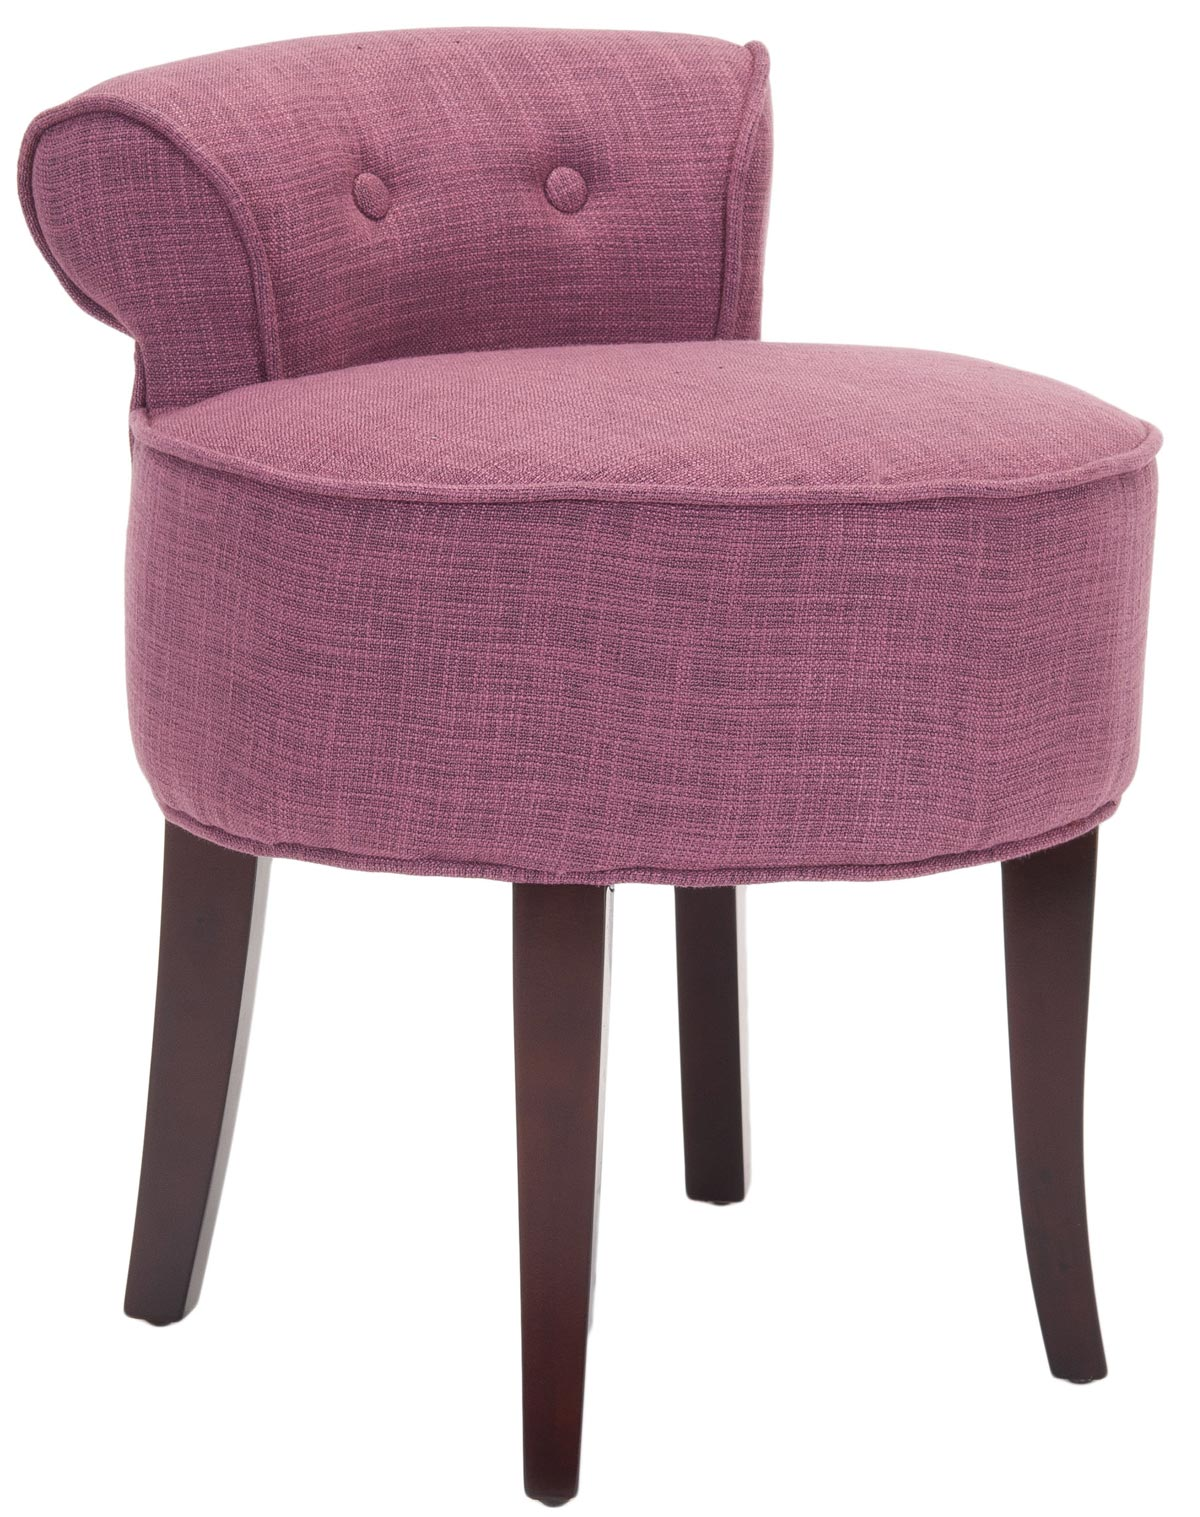 Safavieh - MCR4546C GEORGIA VANITY CHAIR